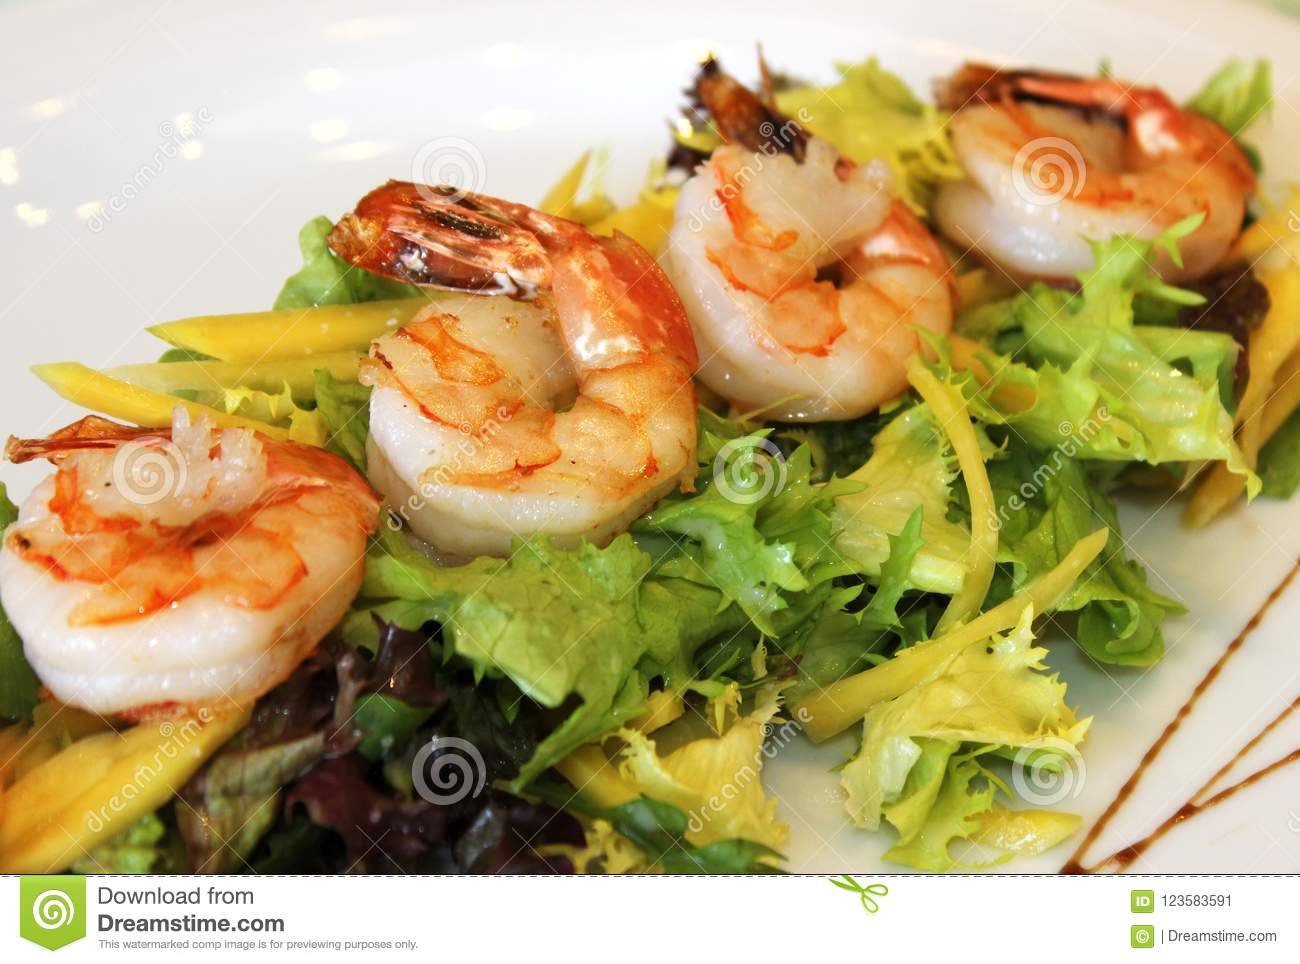 Fried shrimps with greens